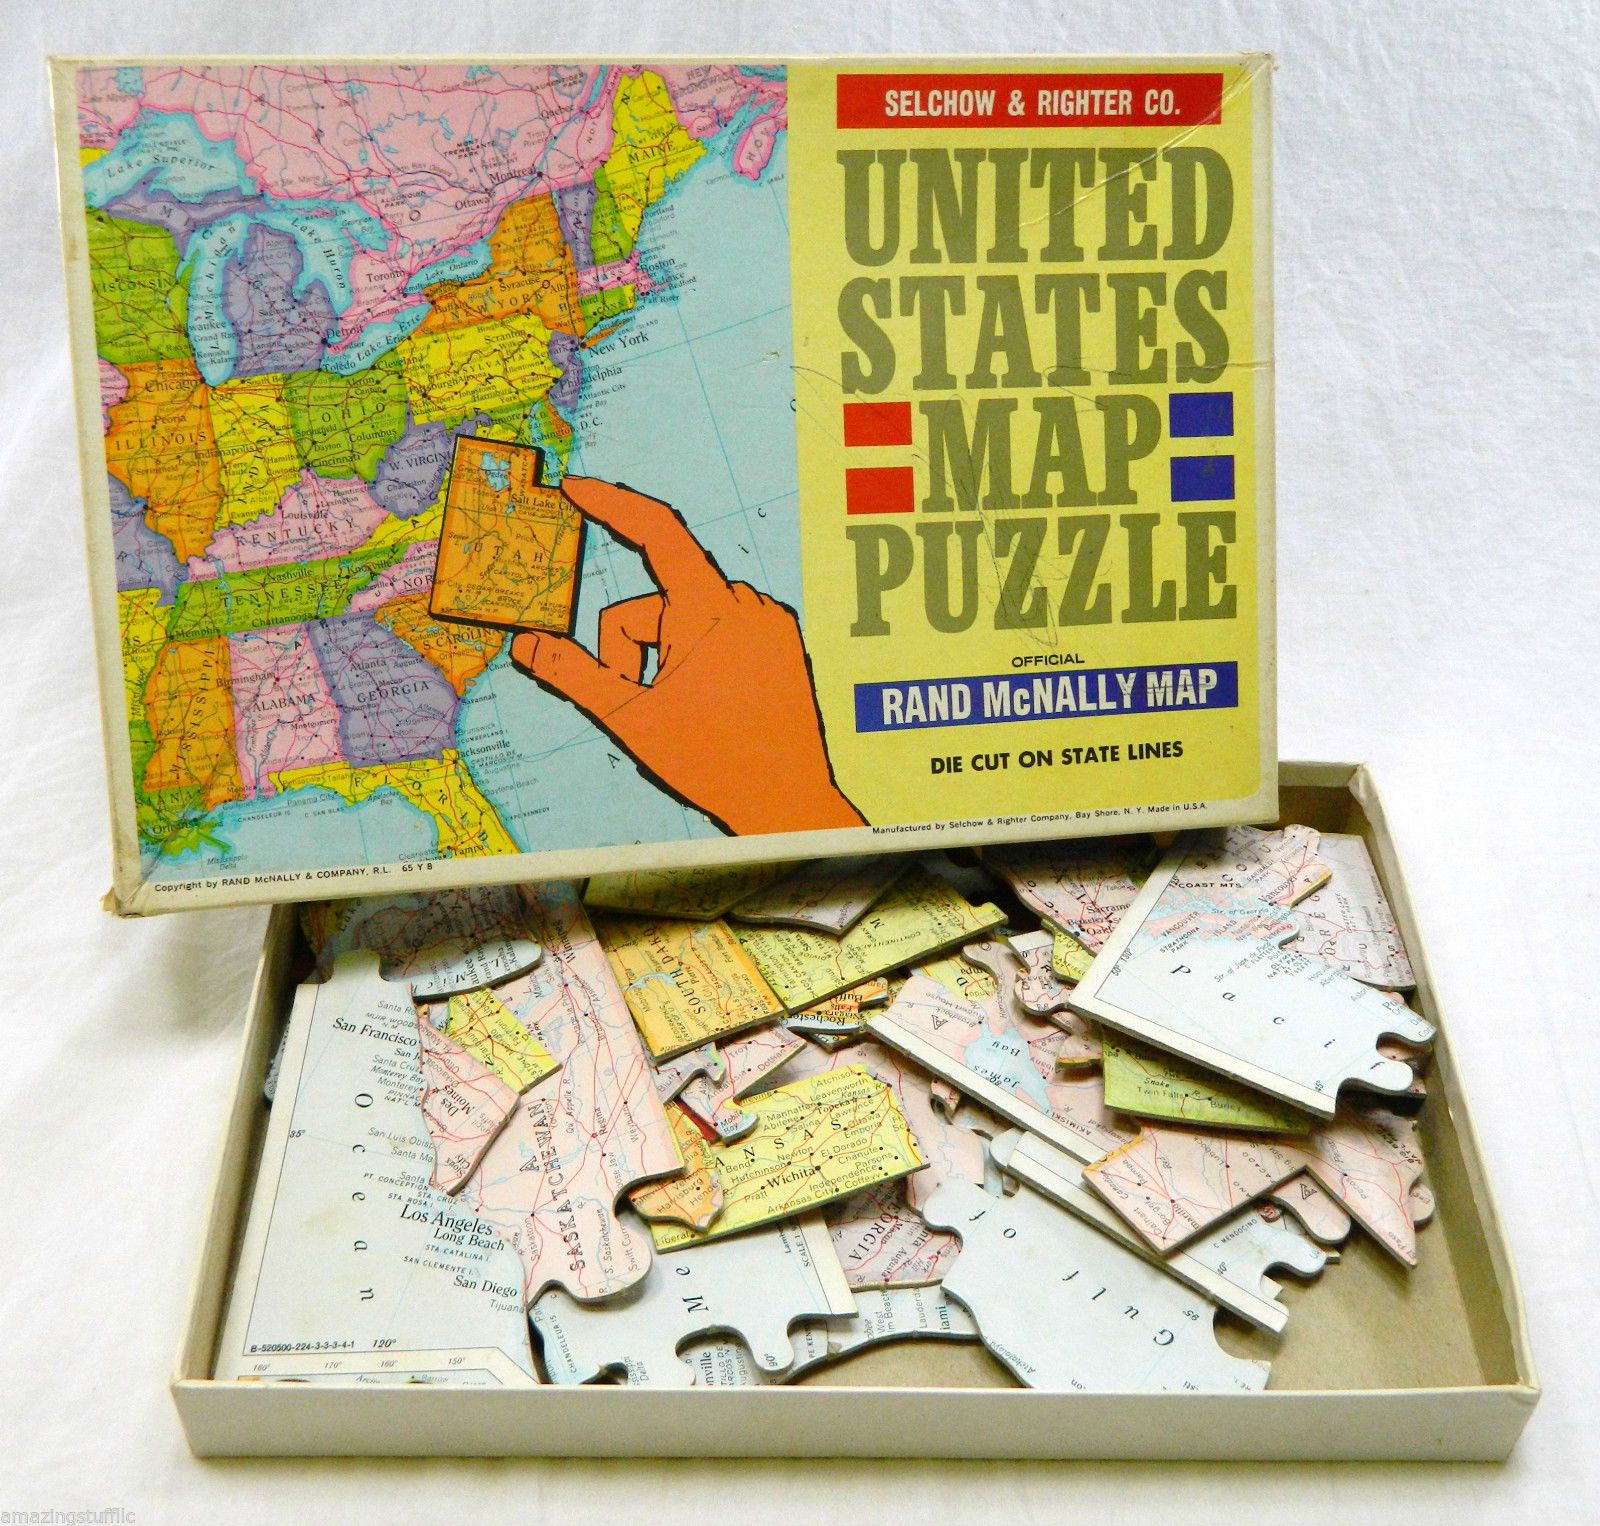 1965 complete united states map puzzle selchow righter vintage rand 1965 complete united states map puzzle selchow righter vintage rand mcnally ebay 20 and 15 gumiabroncs Images